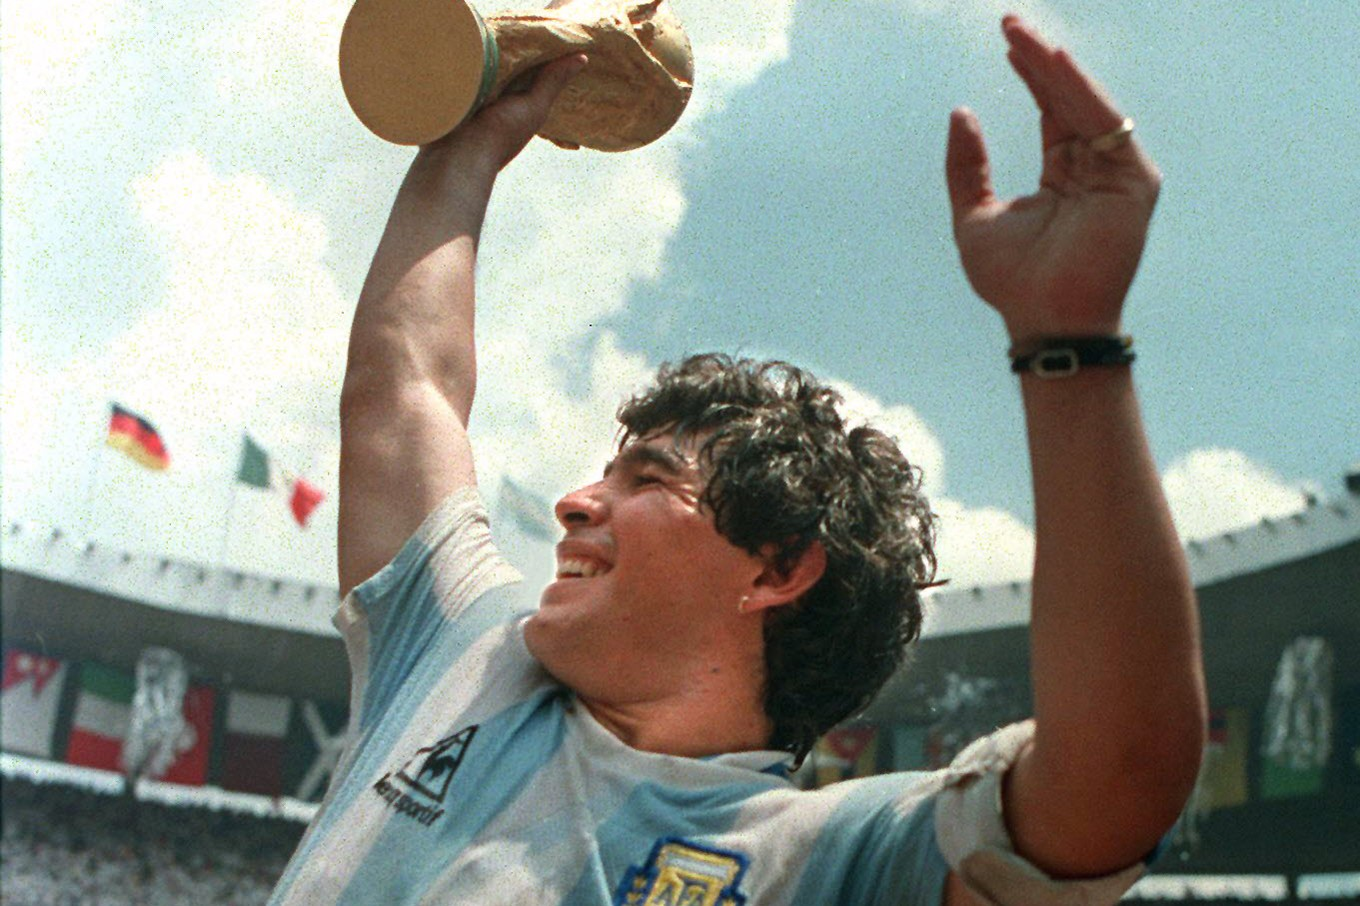 (FILE) Argentina's soccer star team captain Diego Maradona brandishes the World Cup won by his team after a 3-2 victory over West Germany 29 June 1986 at the Azteca stadium in Mexico City. Argentinian football legend Diego Maradona was named coach of the national team on October 28, 2008 in Buenos Aires, according to 1986 World Cup winning coach Carlos Bilardo, after he came out of a meeting with Argentinian Football Association president Julio Grondona.